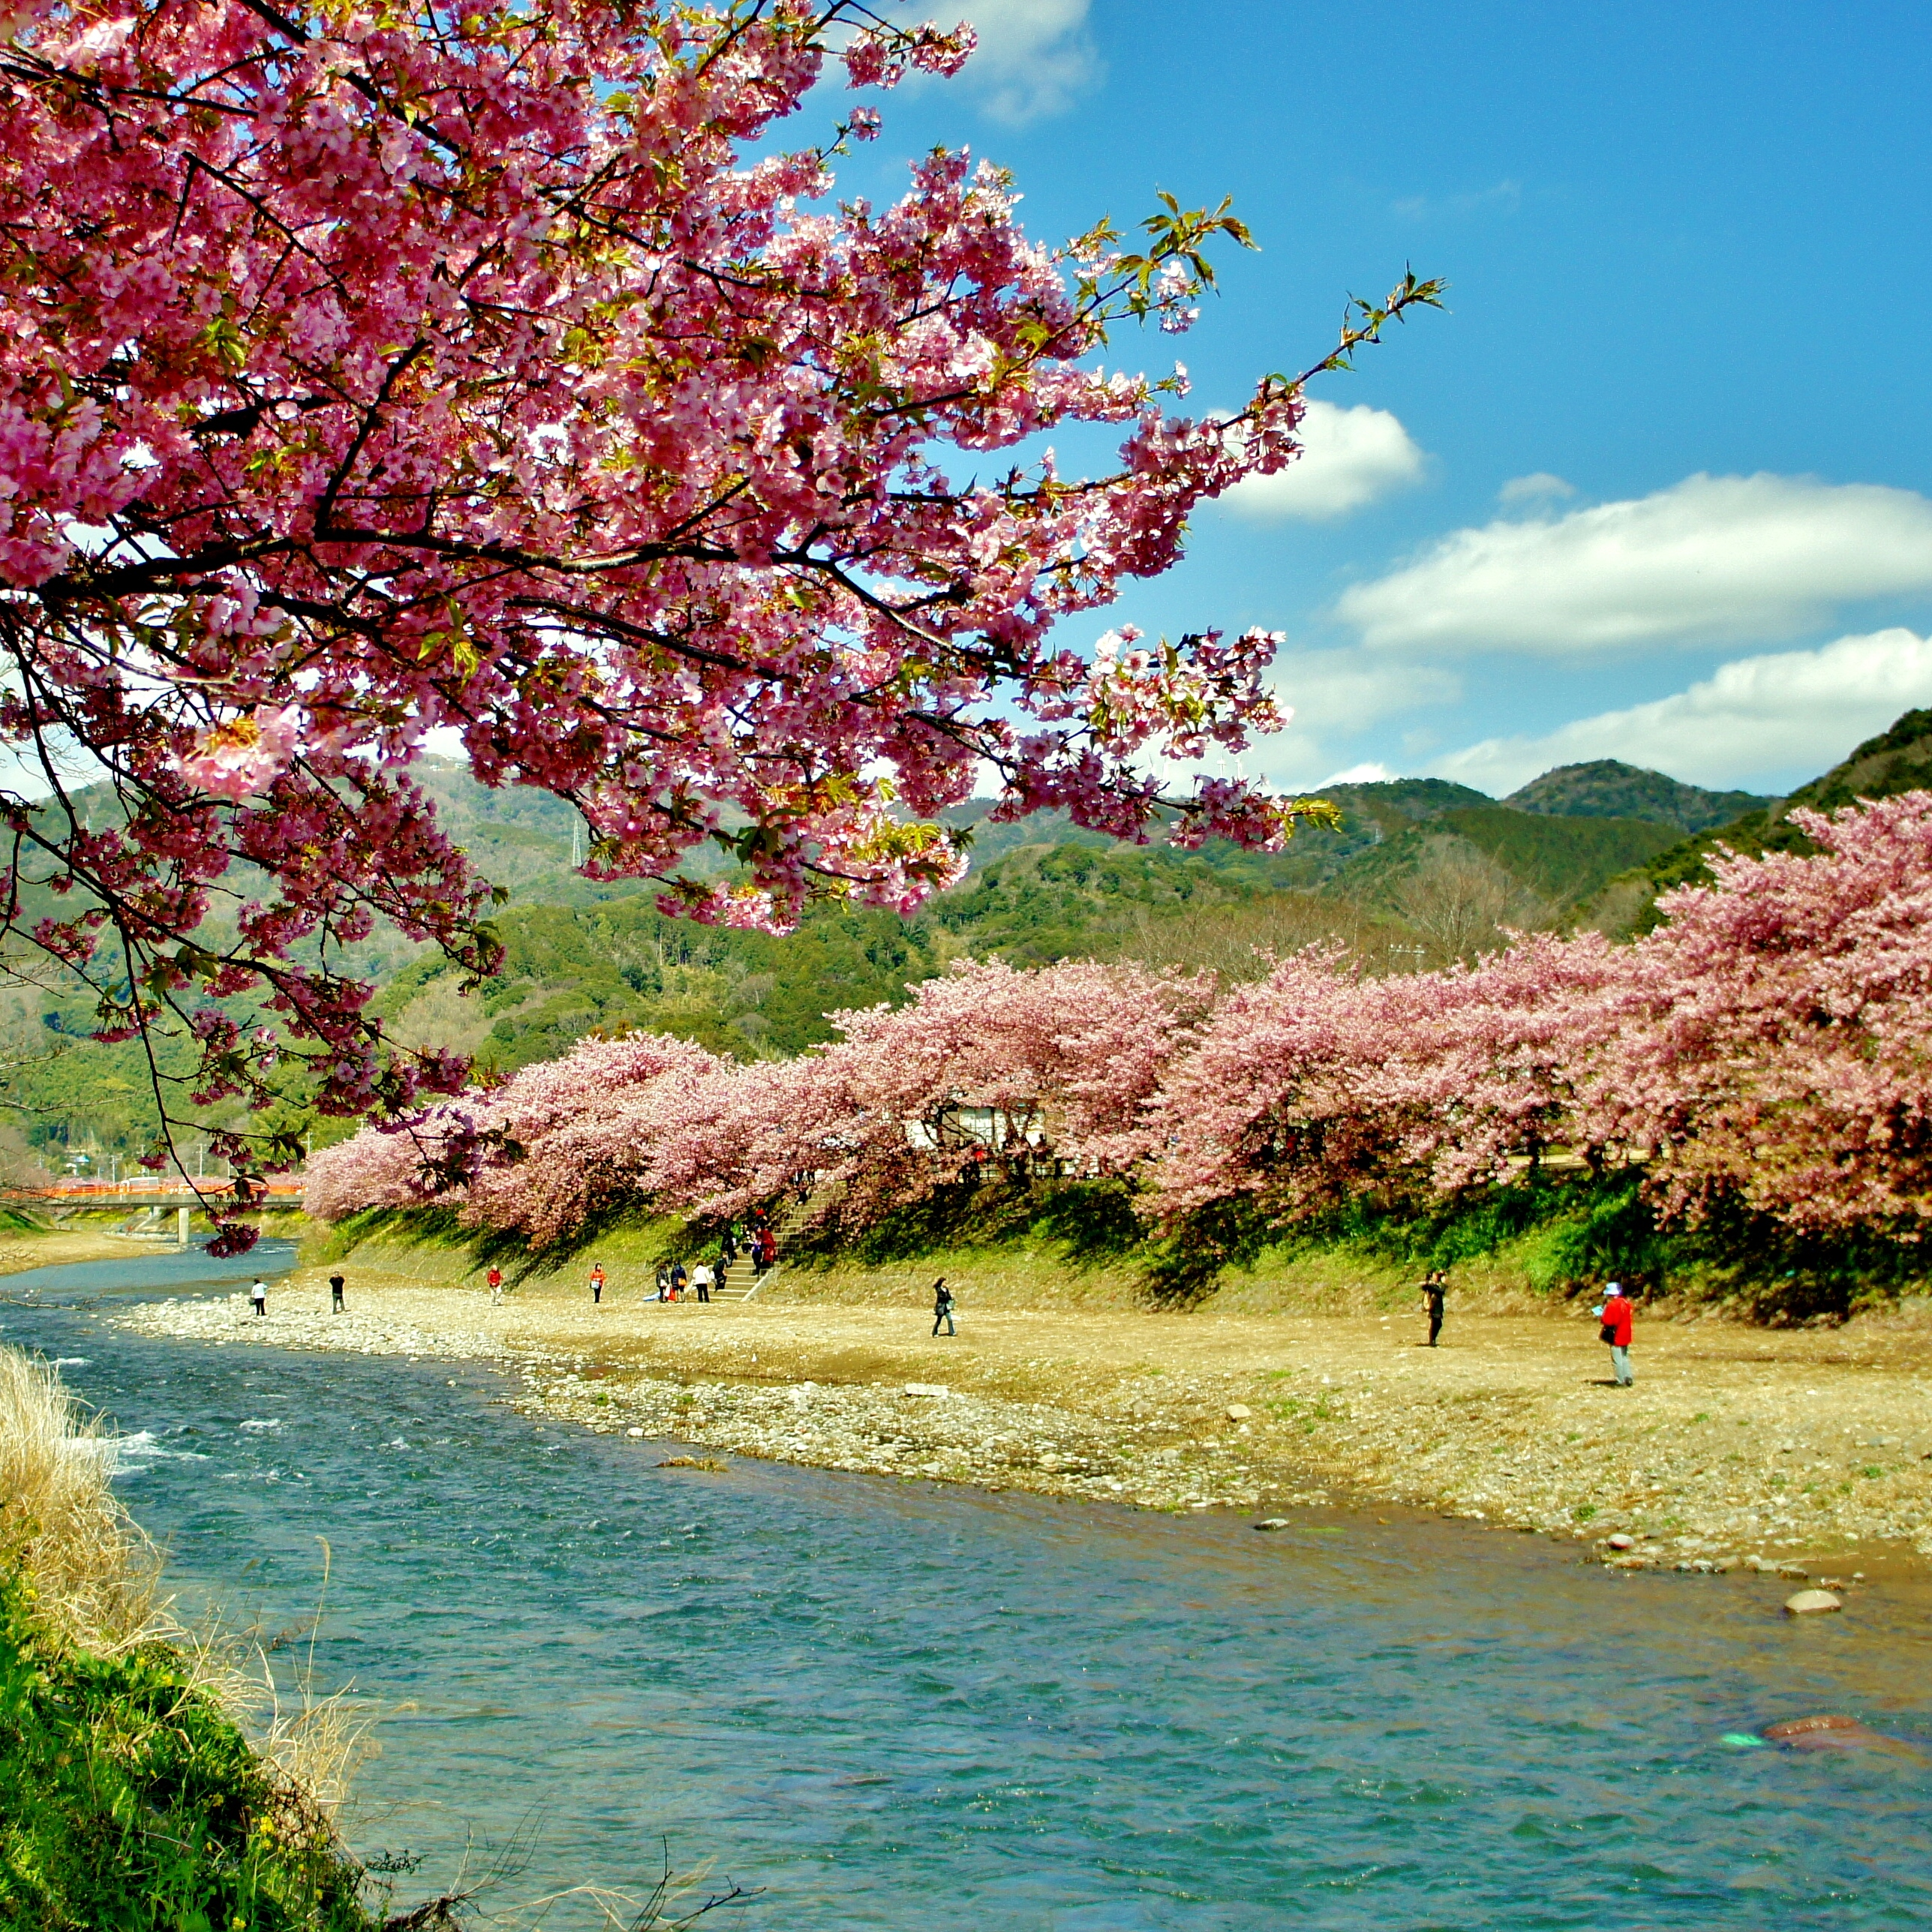 The Sakura of Kawazu – 河津の桜